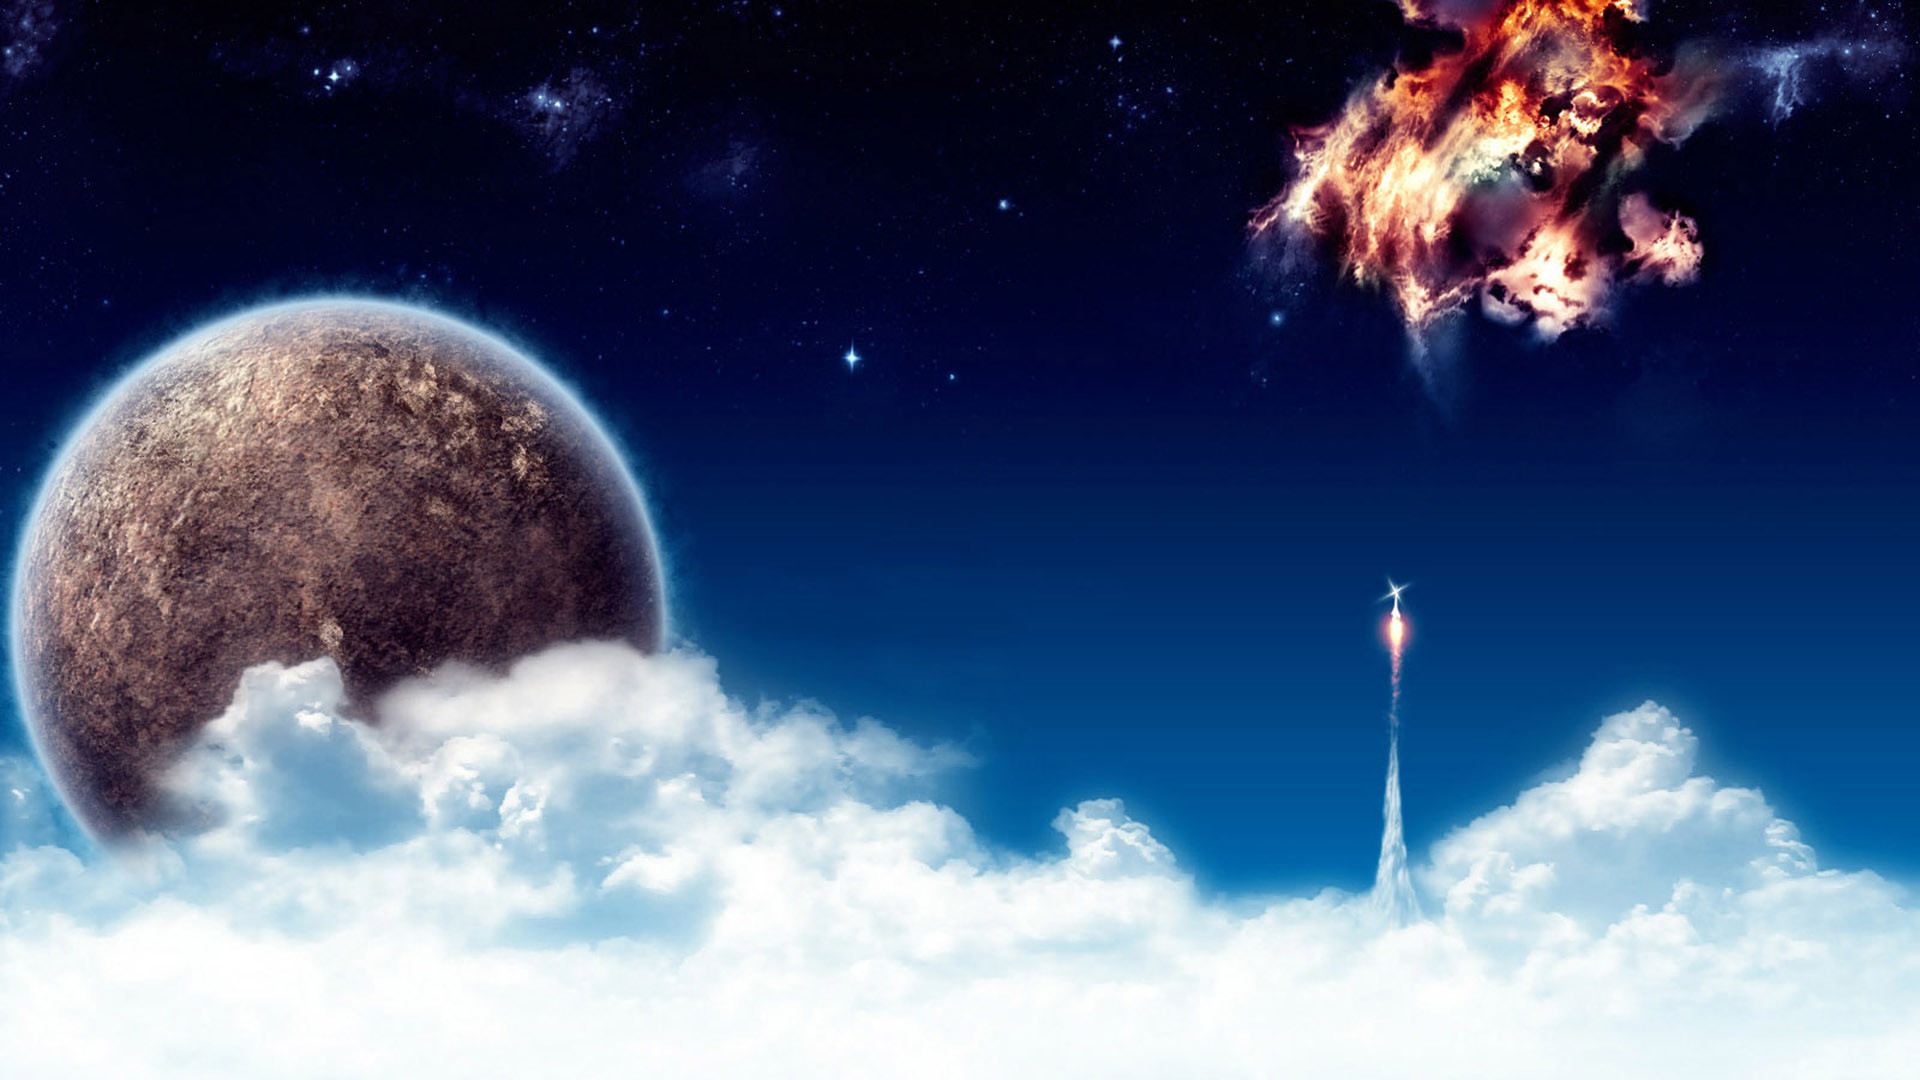 space, wallpaper, screensaver, earth, clouds, wallpapers, throug .